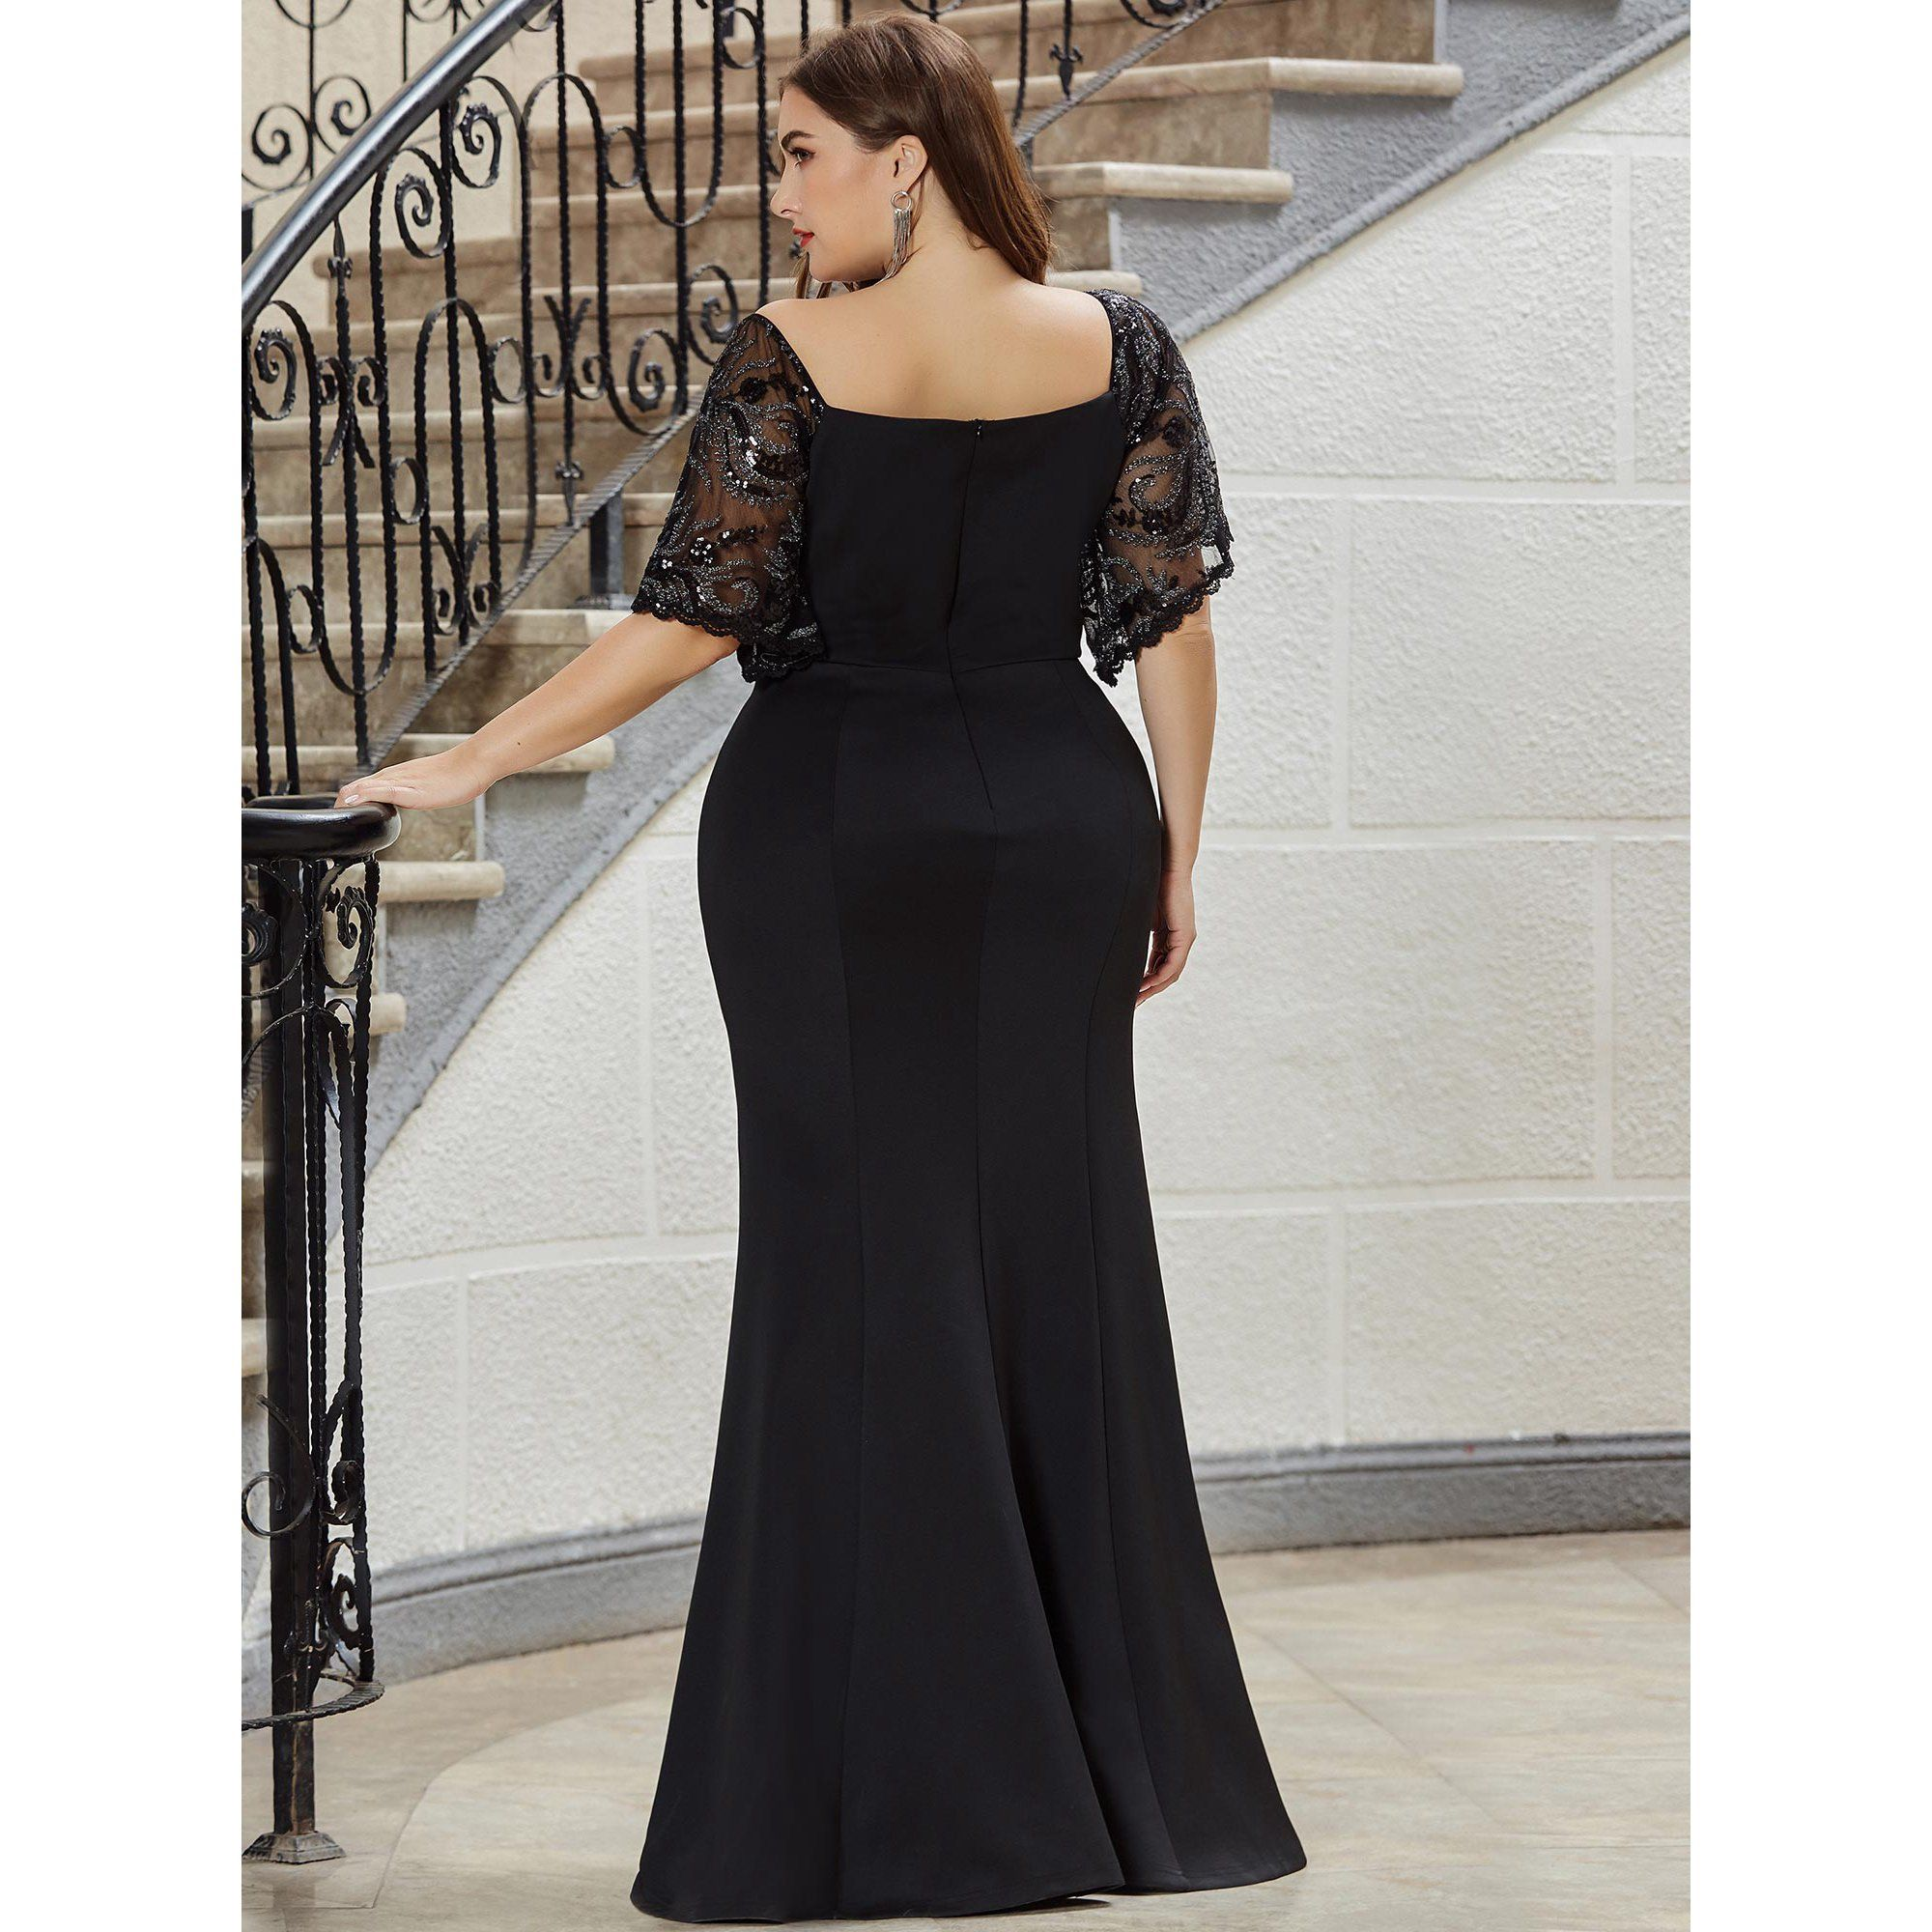 Ever Pretty Ever Pretty Evening Dress For Women Formal Plus Size Bridesmaid Dress For Wedding In 2021 Bridesmaid Dresses Plus Size Evening Dresses Plus Size Dresses [ 2000 x 2000 Pixel ]